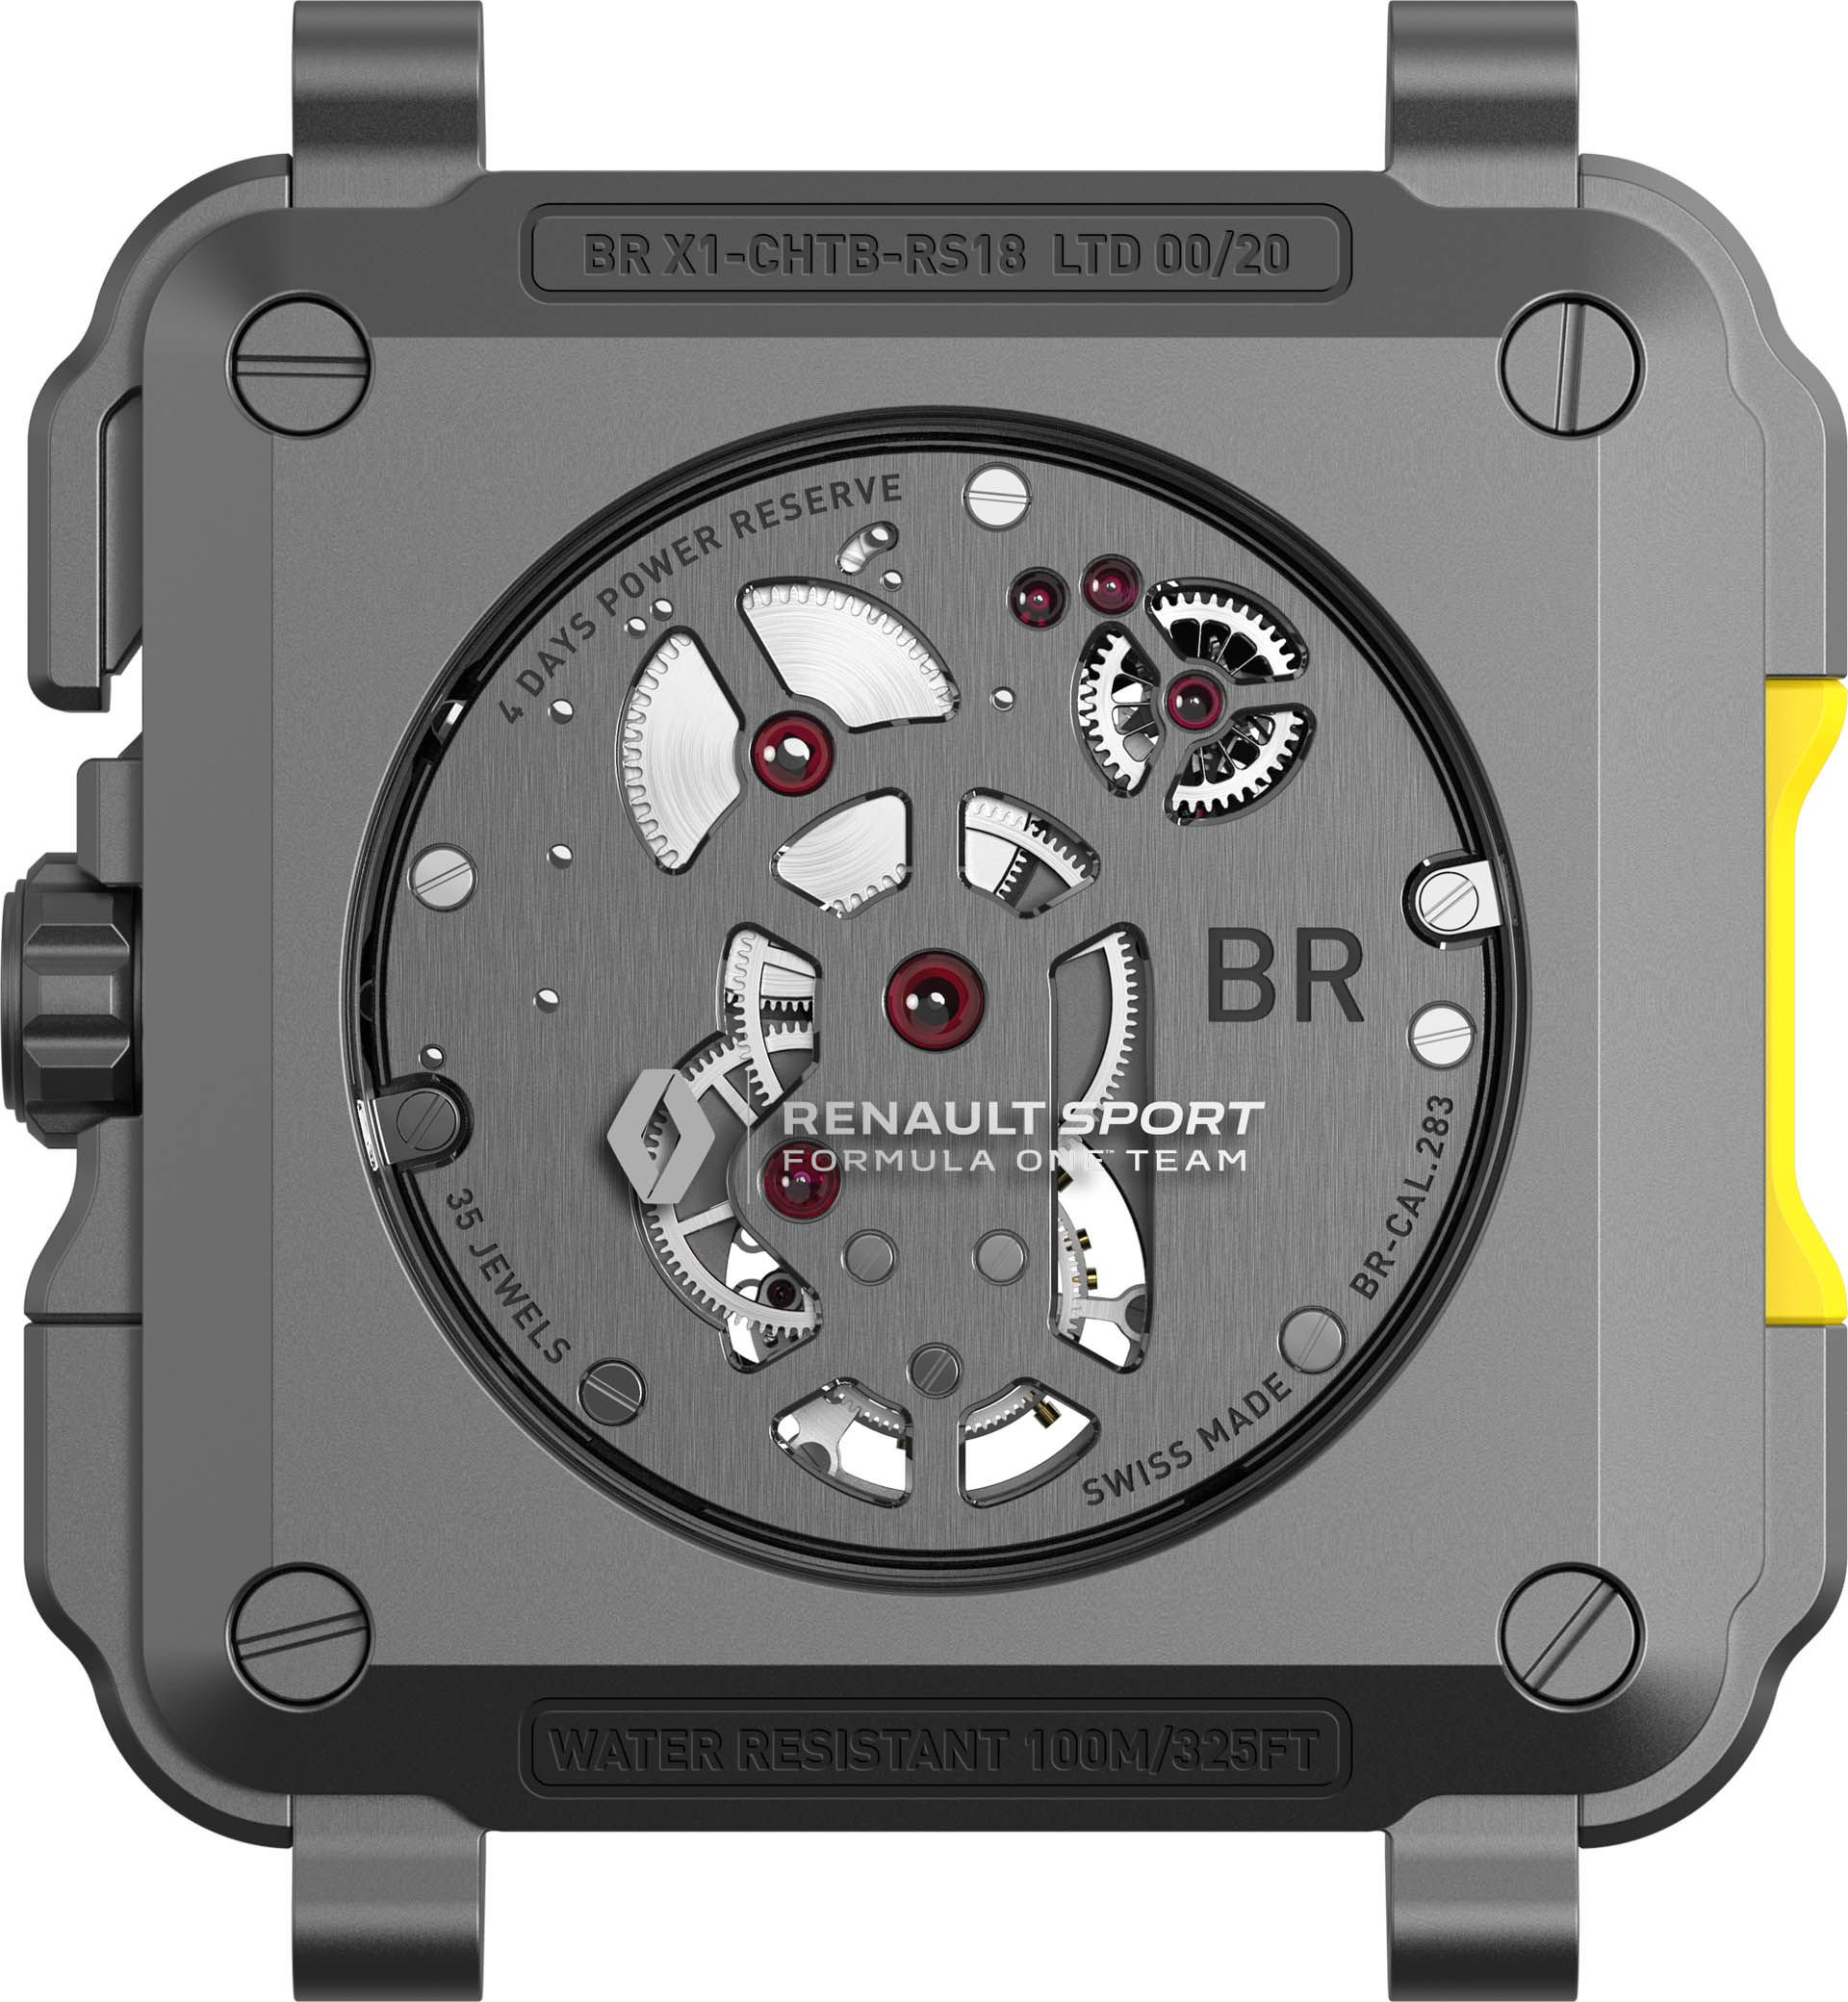 bell-ross-renault-rs18-watch-07